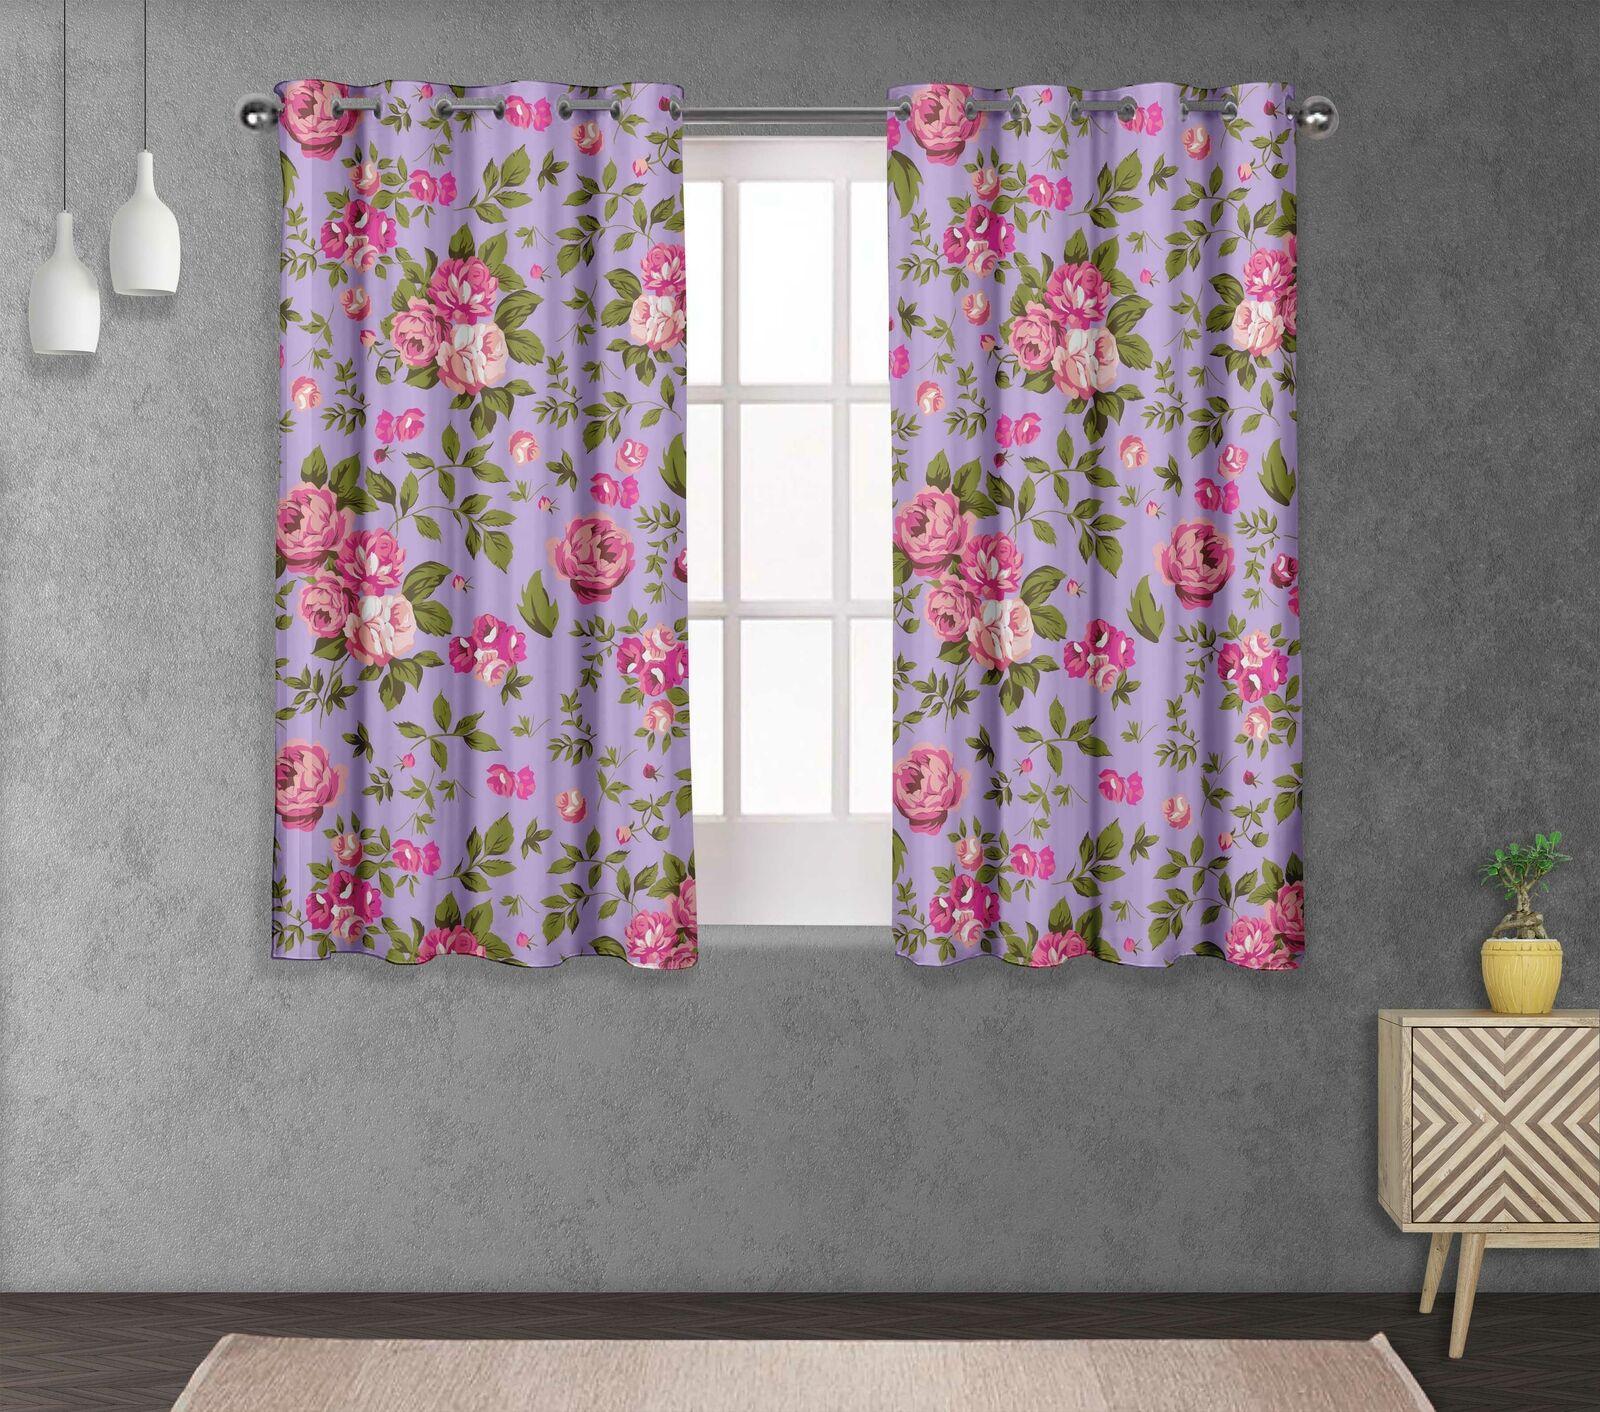 S4sassy Leaves & Begonia Bed Room Divider short & long Curtain Panel -FL-1O